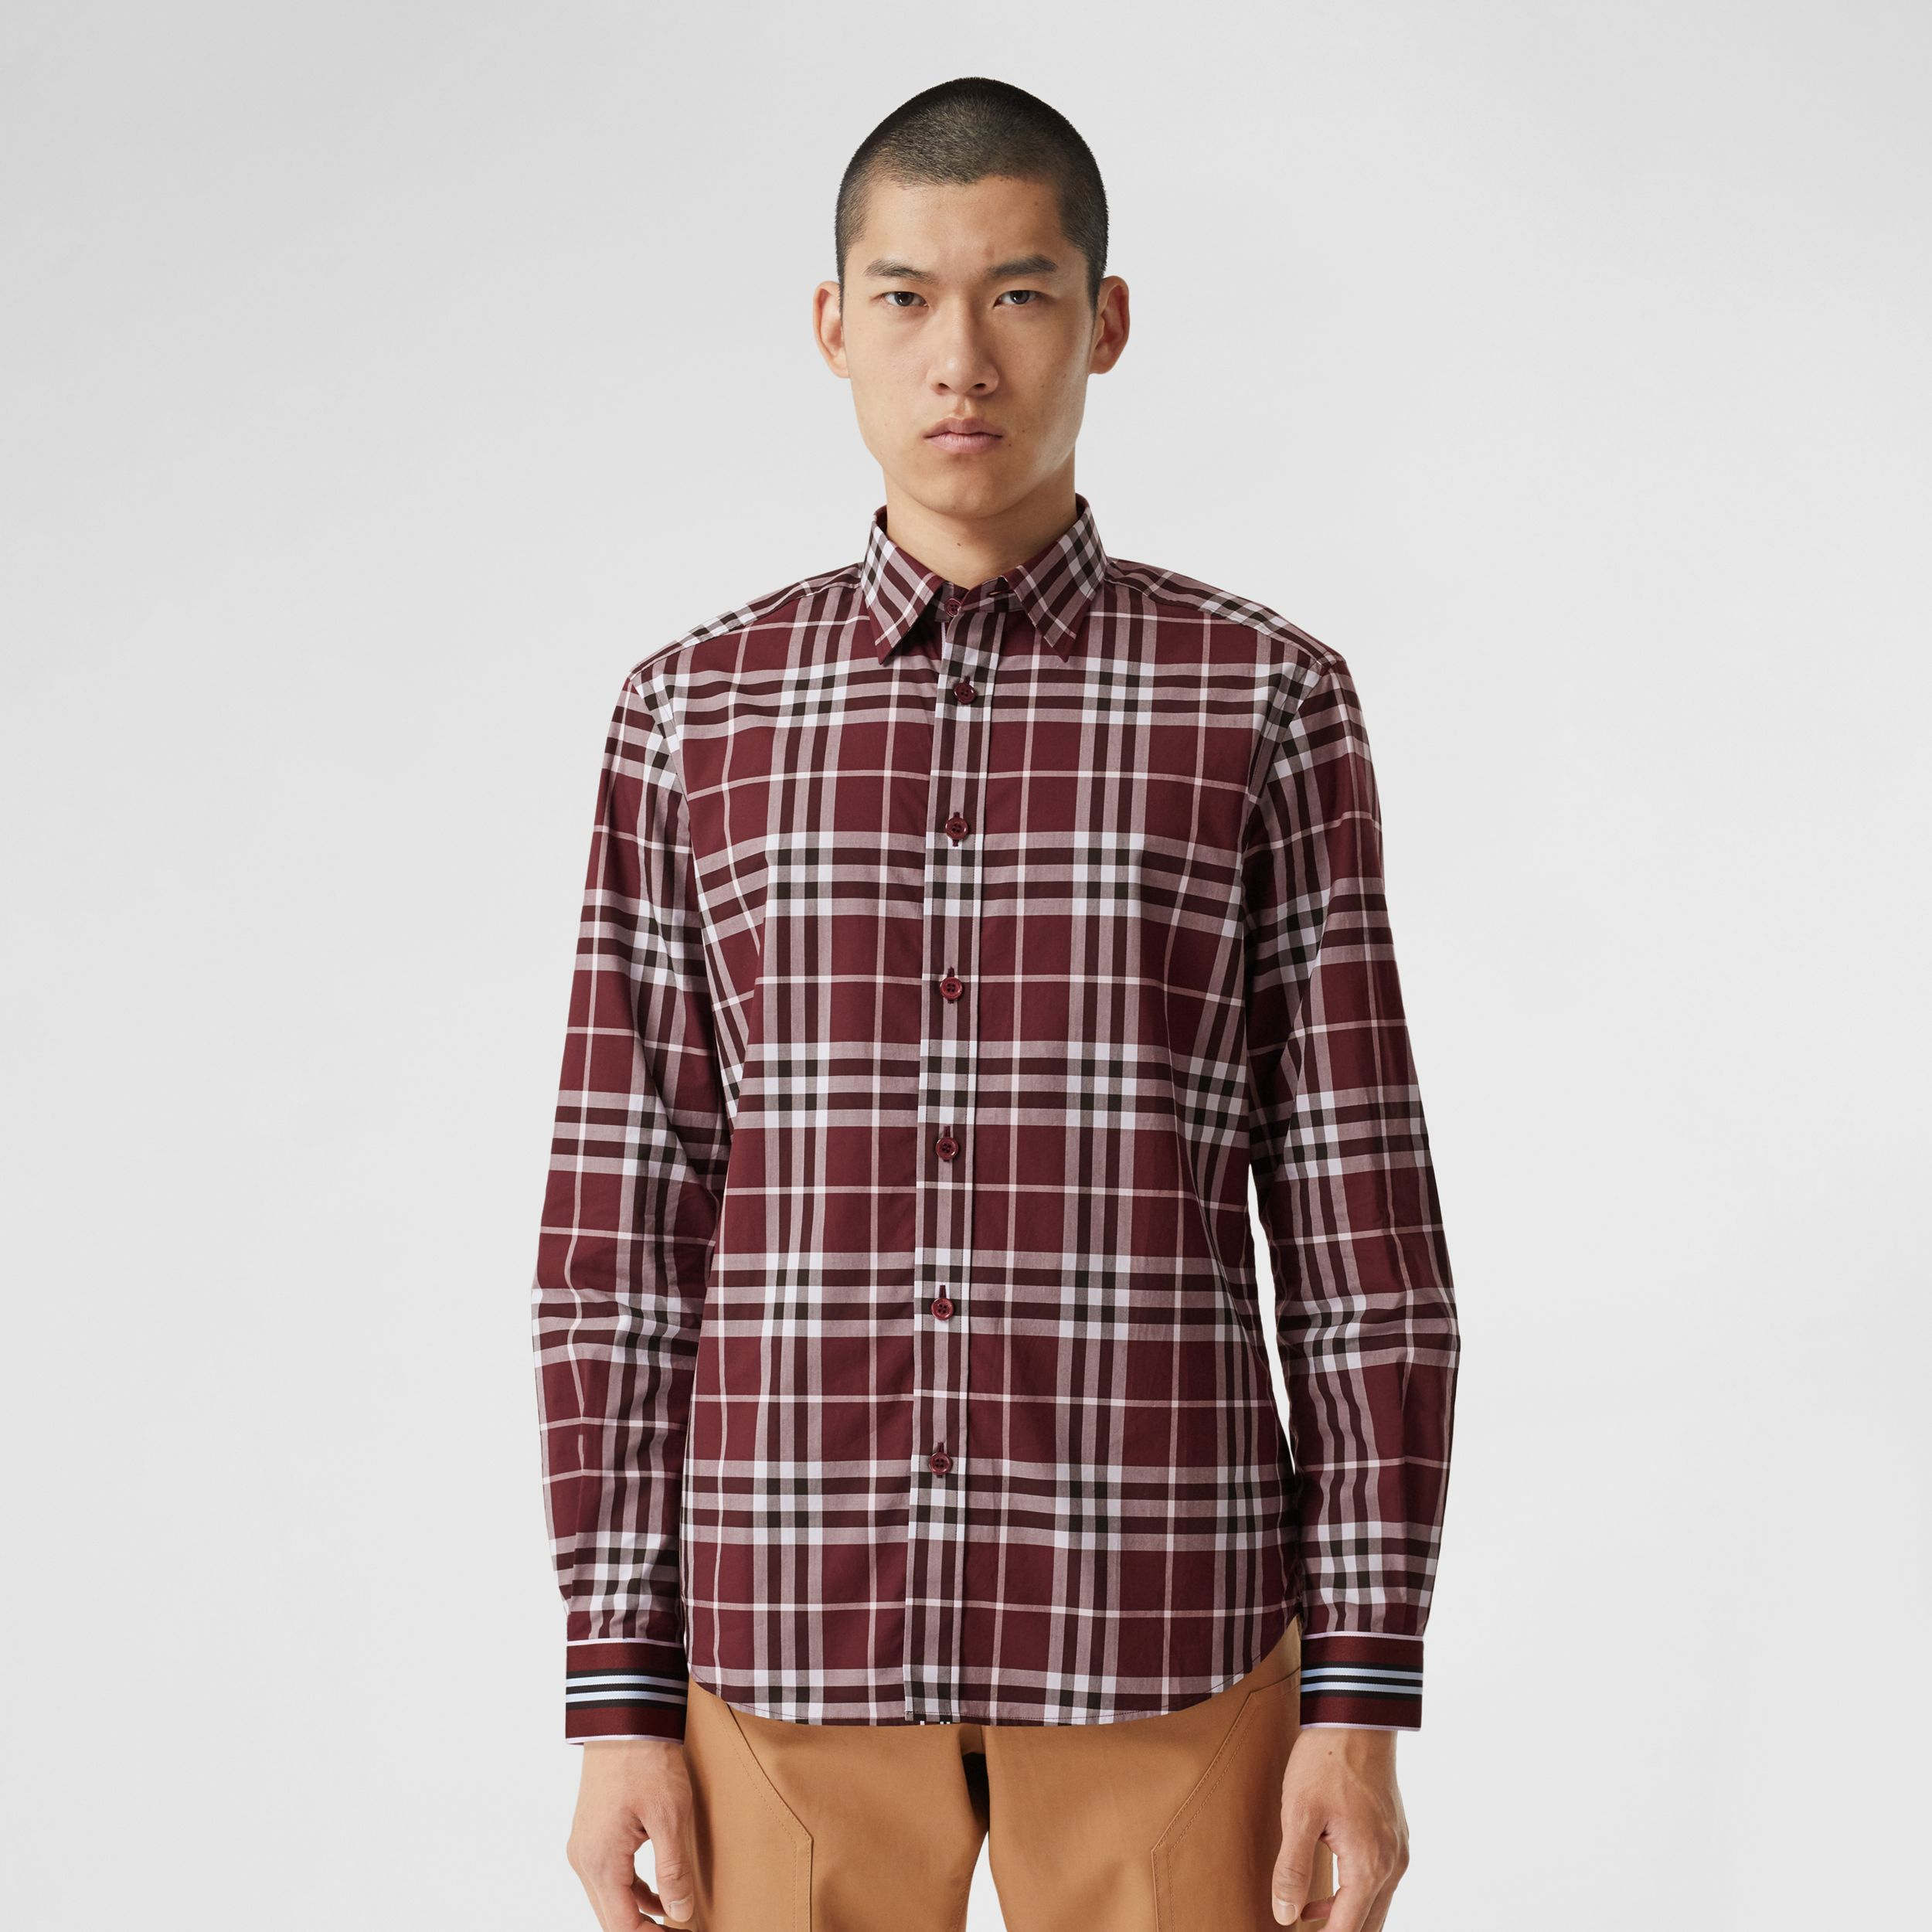 Stripe Cuff Check Cotton Shirt in Burgundy Red - Men | Burberry - 1